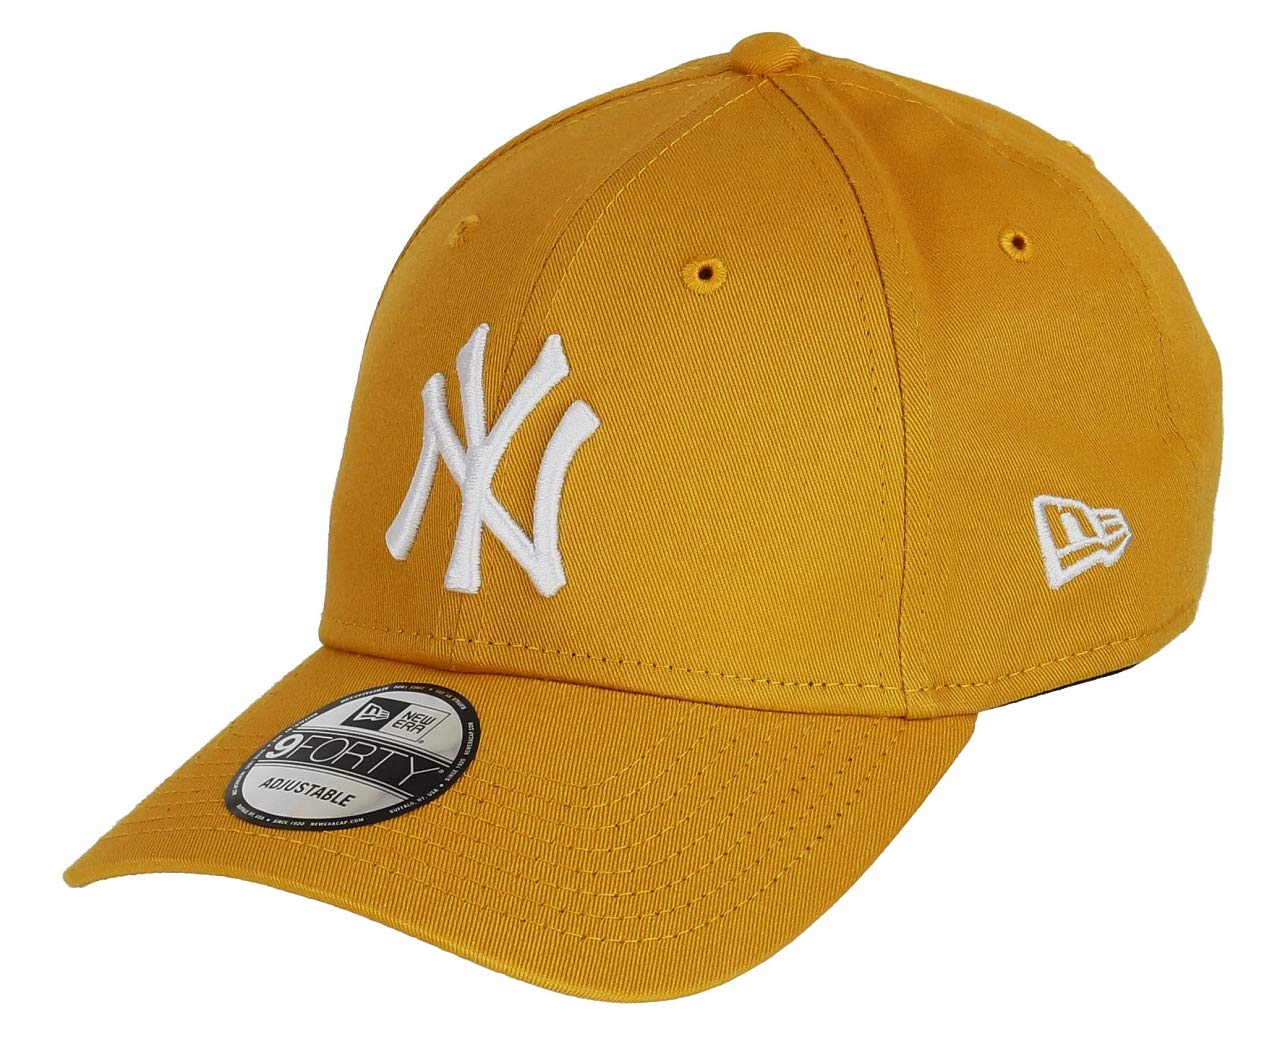 Unbekannt New Era 9forty Strapback Cappello MLB New York Yankees Diversi  Colori - NY Bsq  56d5b8615177